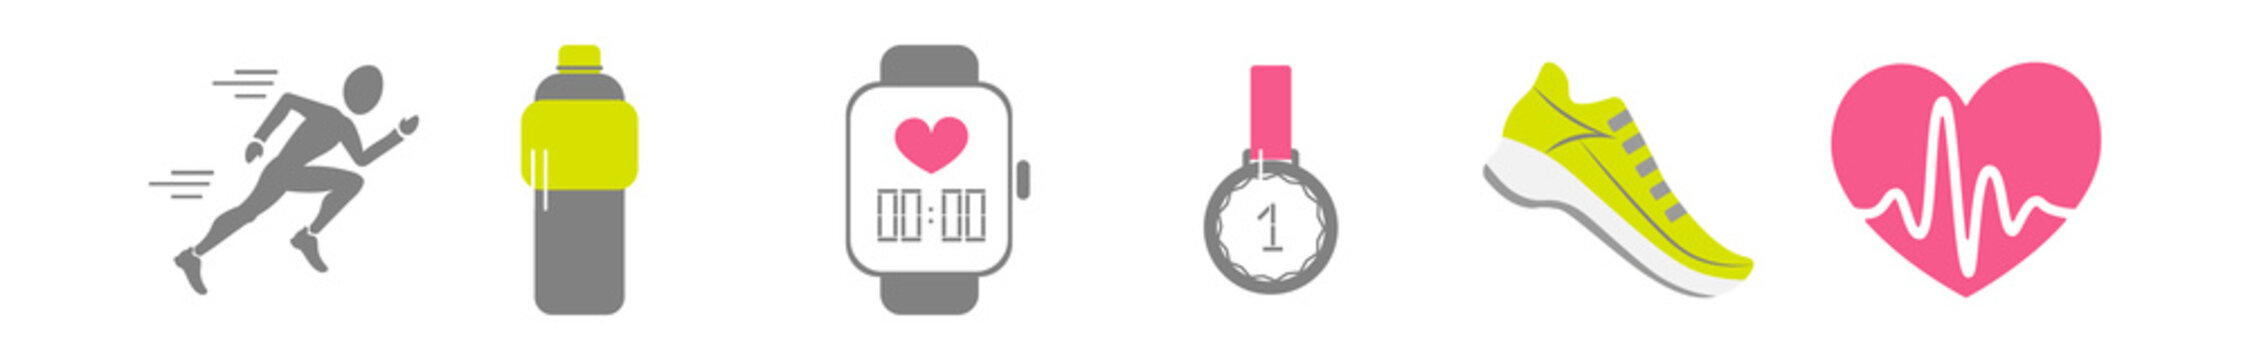 Vector set of running sport icons - jogging person, running shoe, beating heart with pusle, bottle of isotonic or water, smart watch, medal of winner, wireless earphones, sport timer, weigh scale